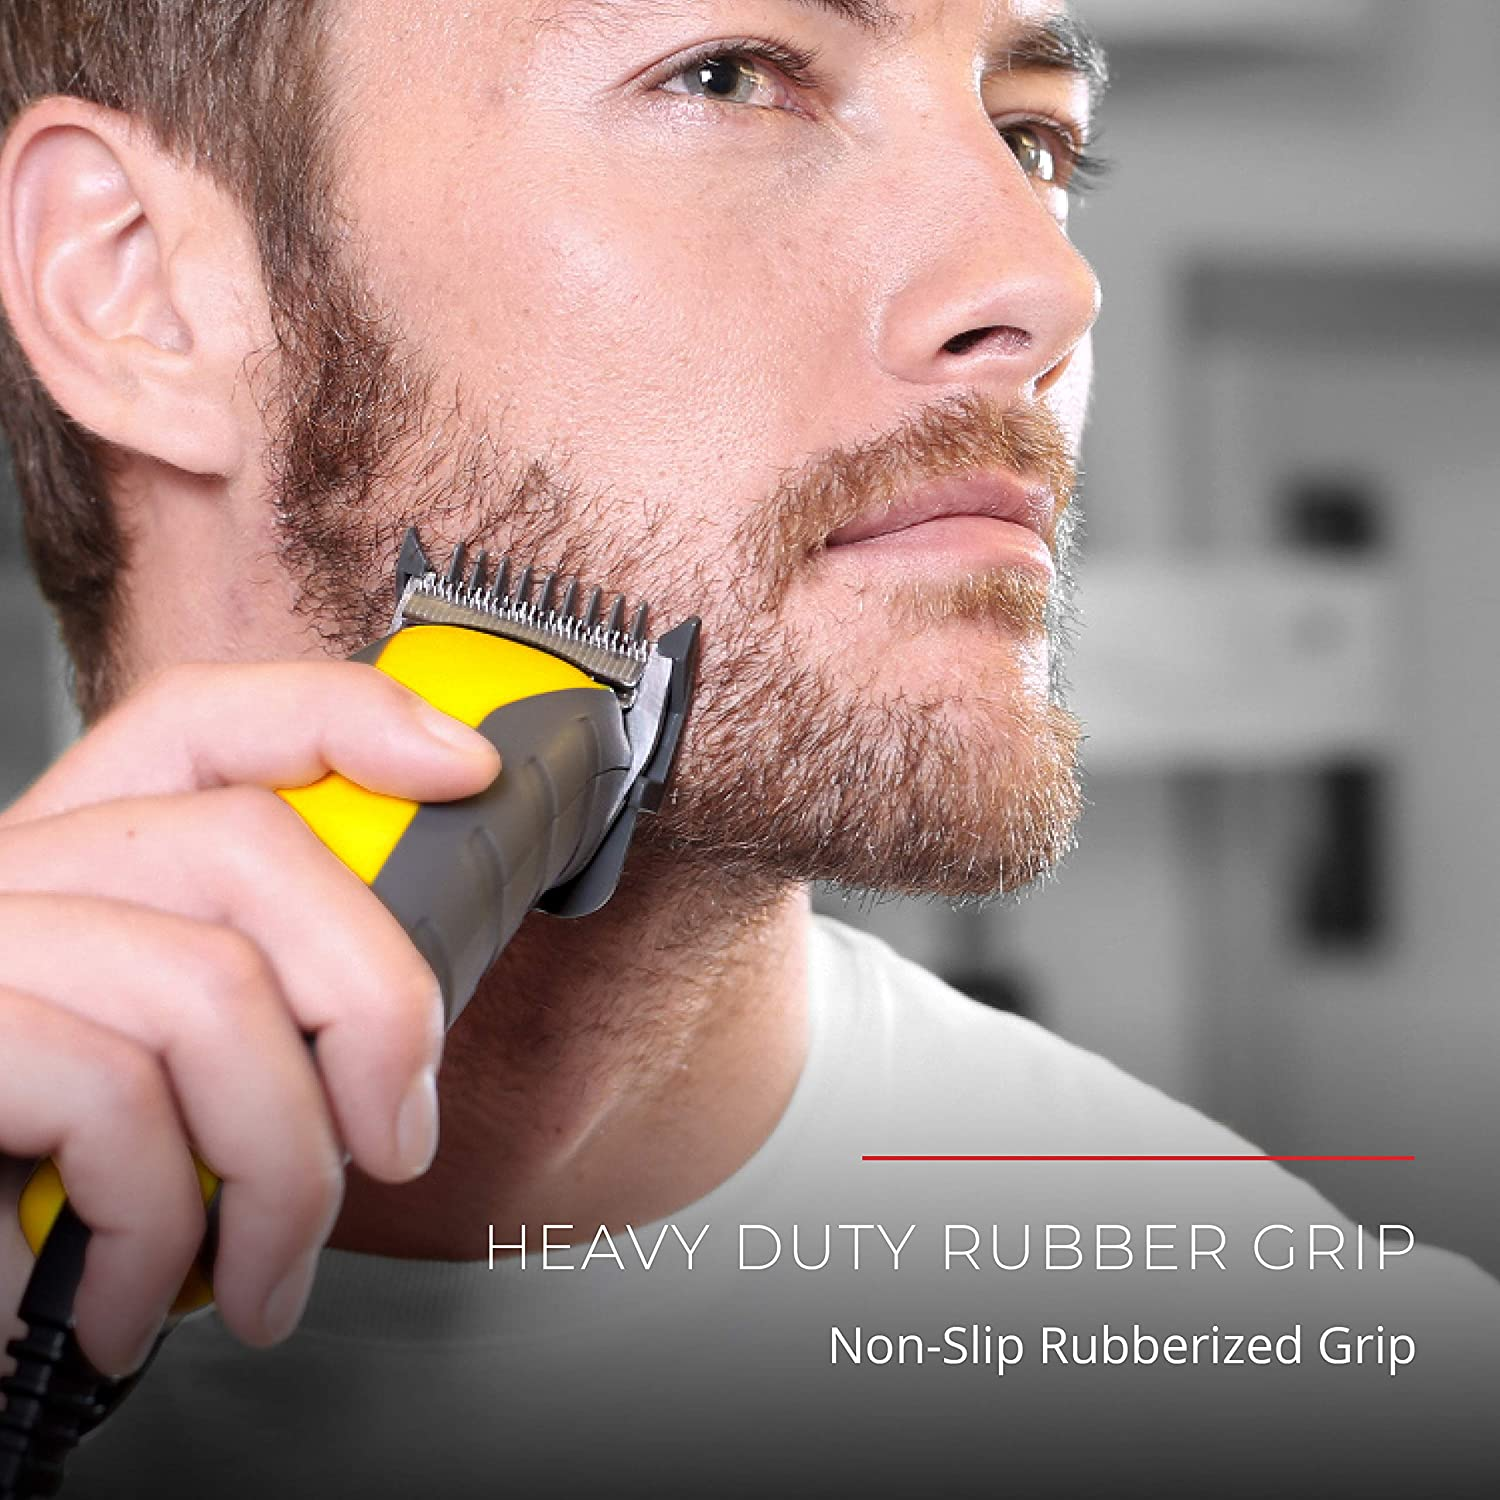 Hair Clippers for Men, Virtually Indestructible Haircut Kit & Beard Trimmer - 15 Pieces